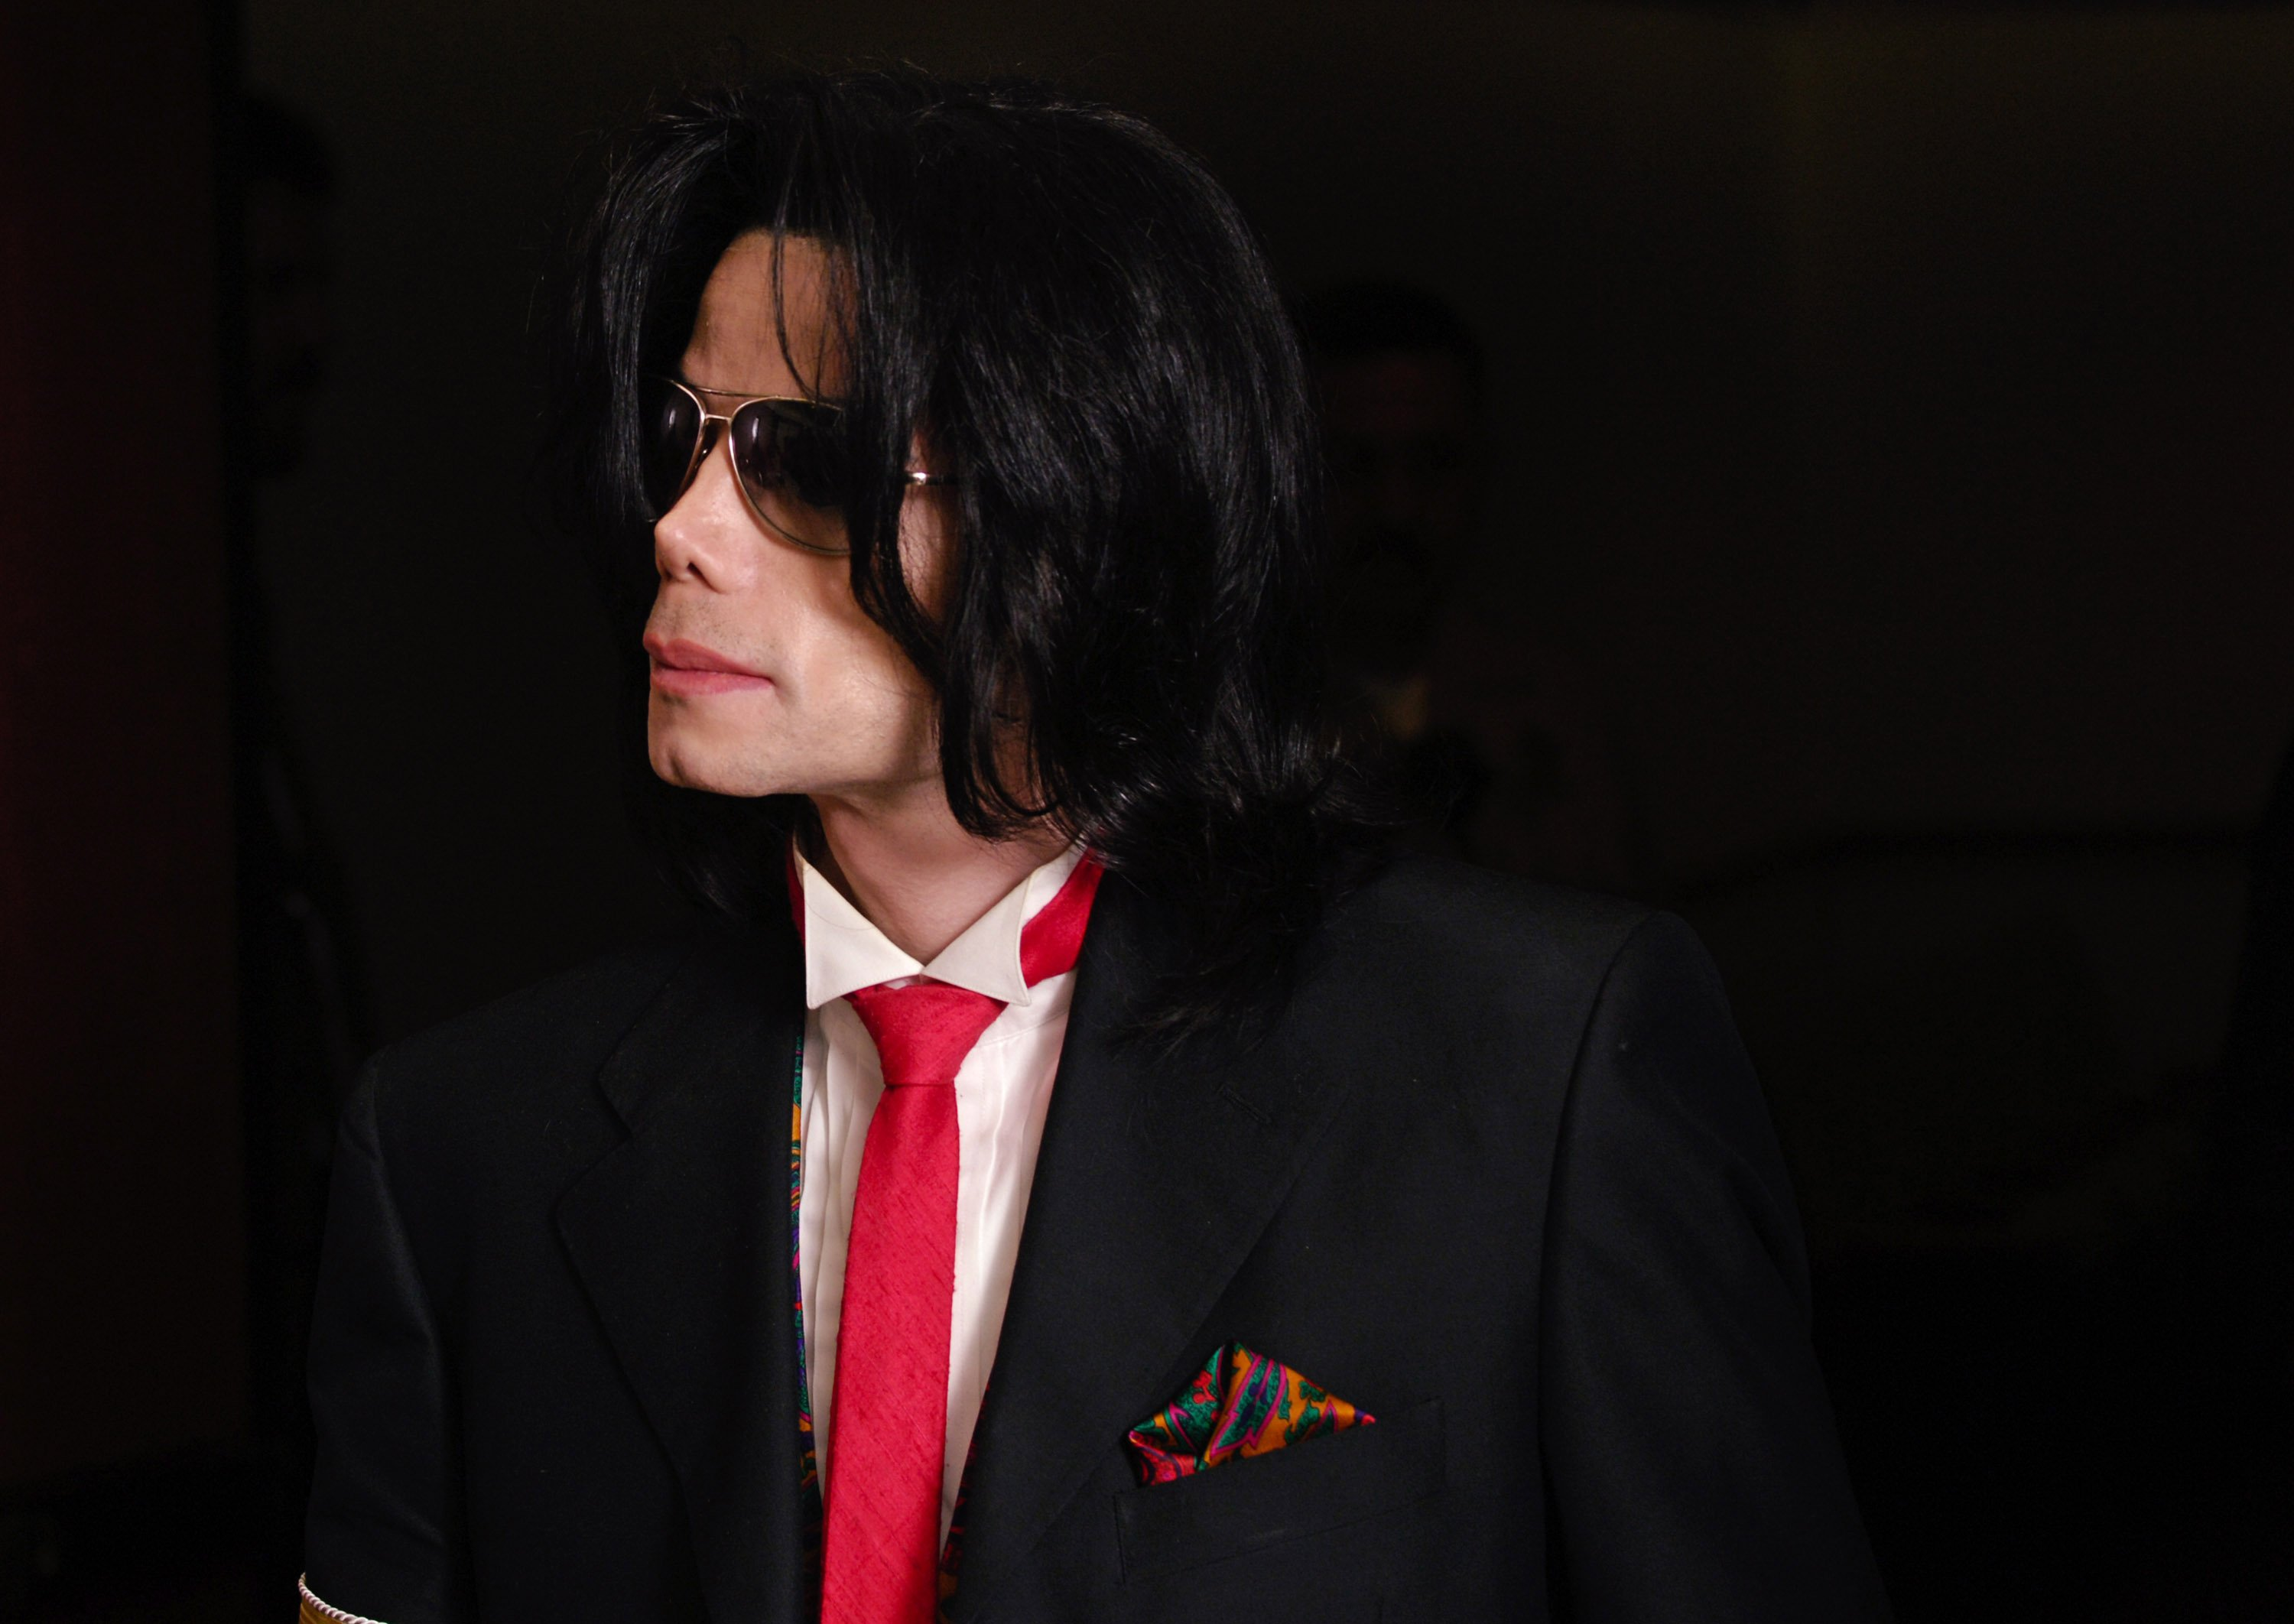 Michael Jackson leaves the courtroom following proceedings in his child molestation trial, 2005. | Photo: GettyImages